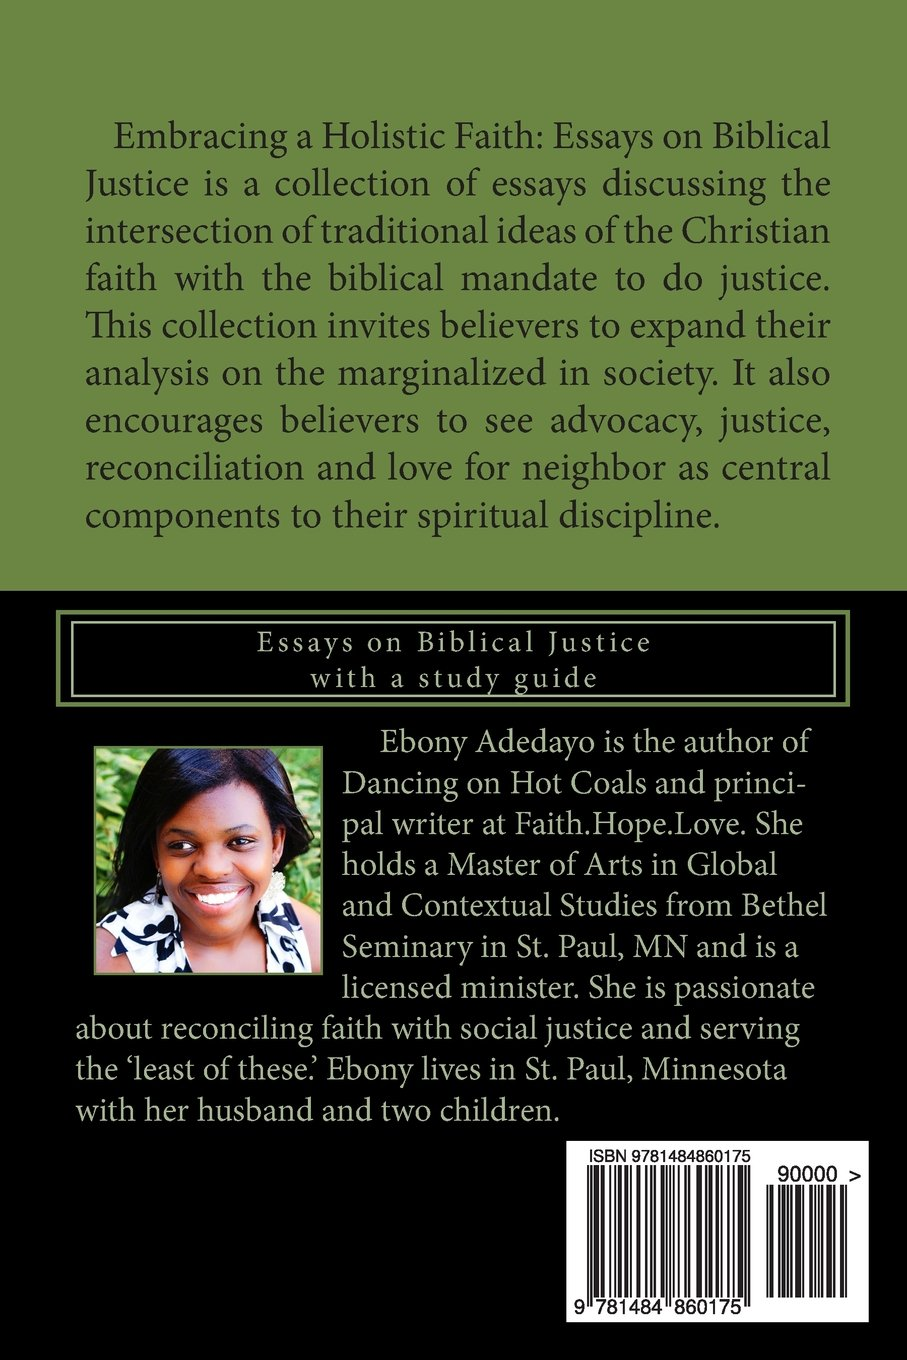 embracing a holistic faith ebony johanna adedayo  embracing a holistic faith ebony johanna adedayo 9781484860175 com books